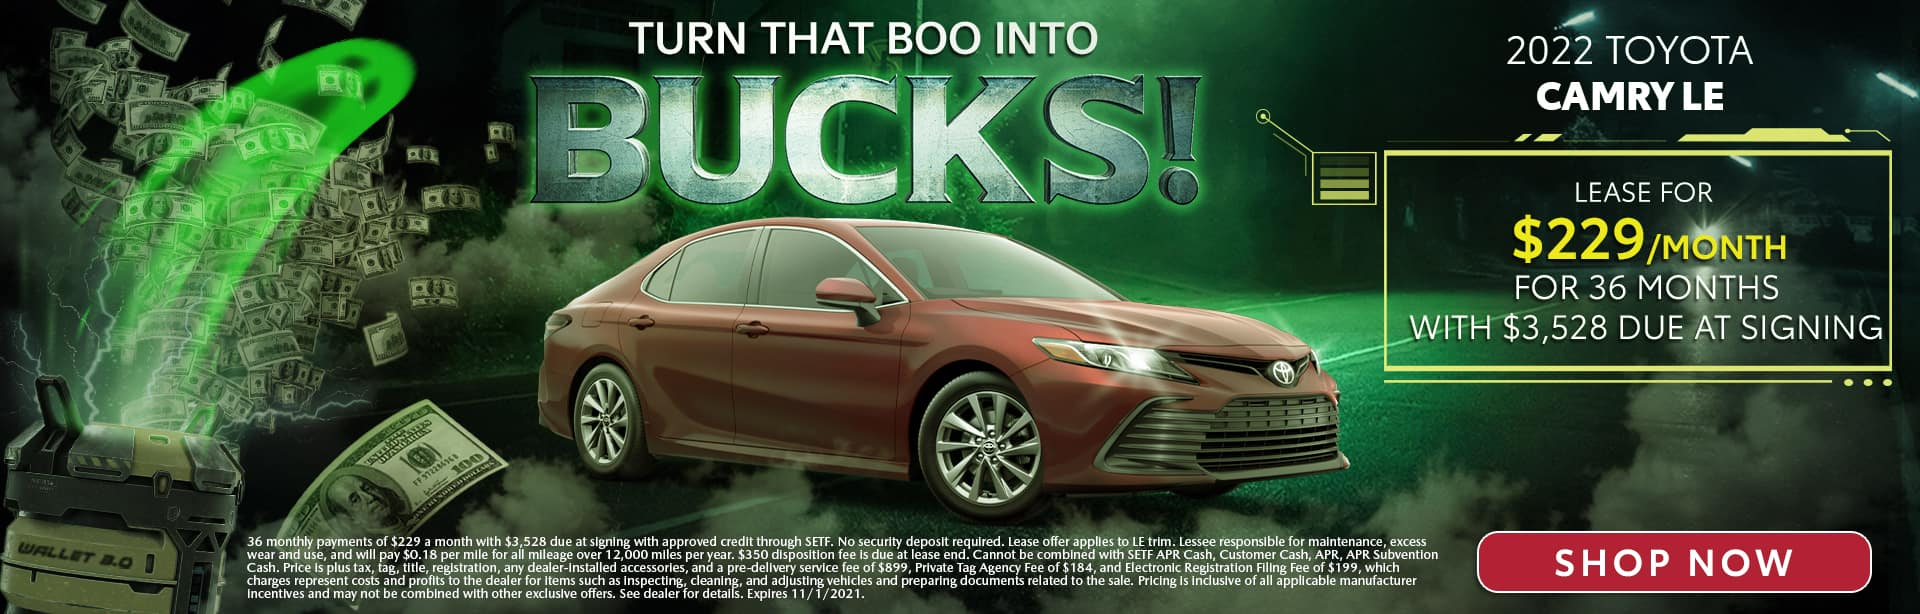 Turn That Boo Into Bucks | 2022 Toyota Camry LE | Lease For $229/Month for 36 Months with $3,528 Due At Signing